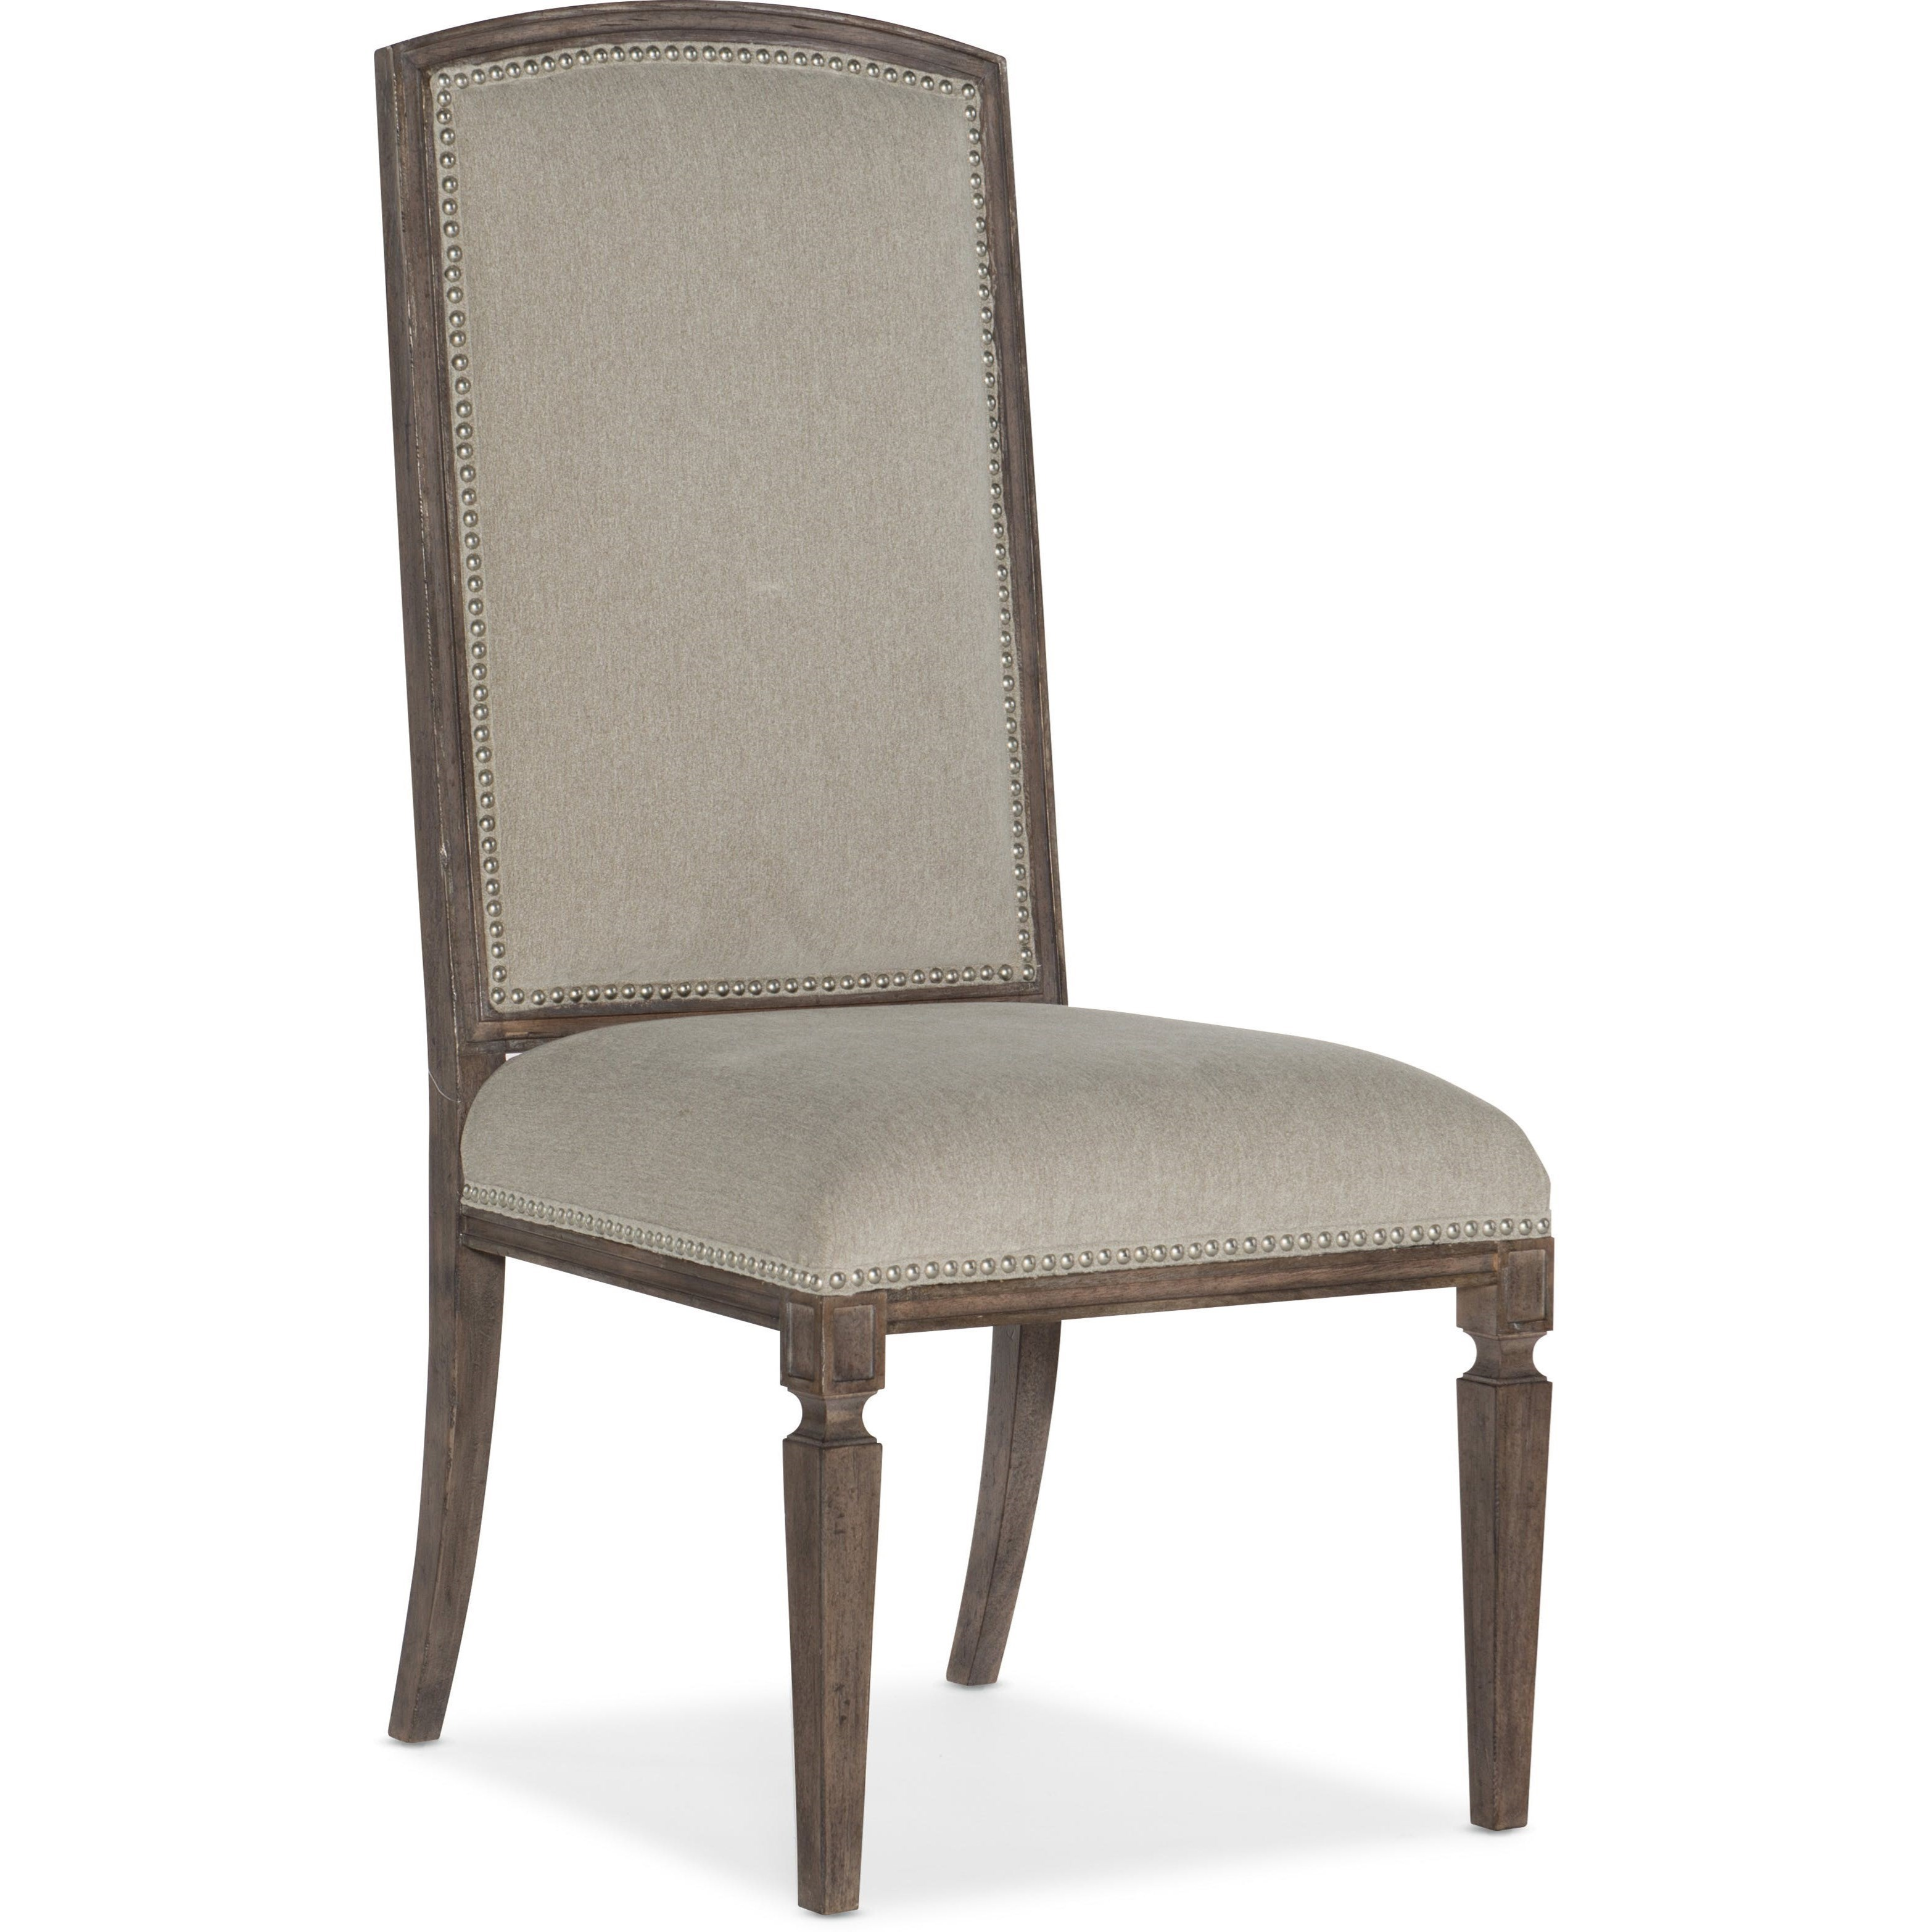 Transitional Arched Upholstered Side Chair